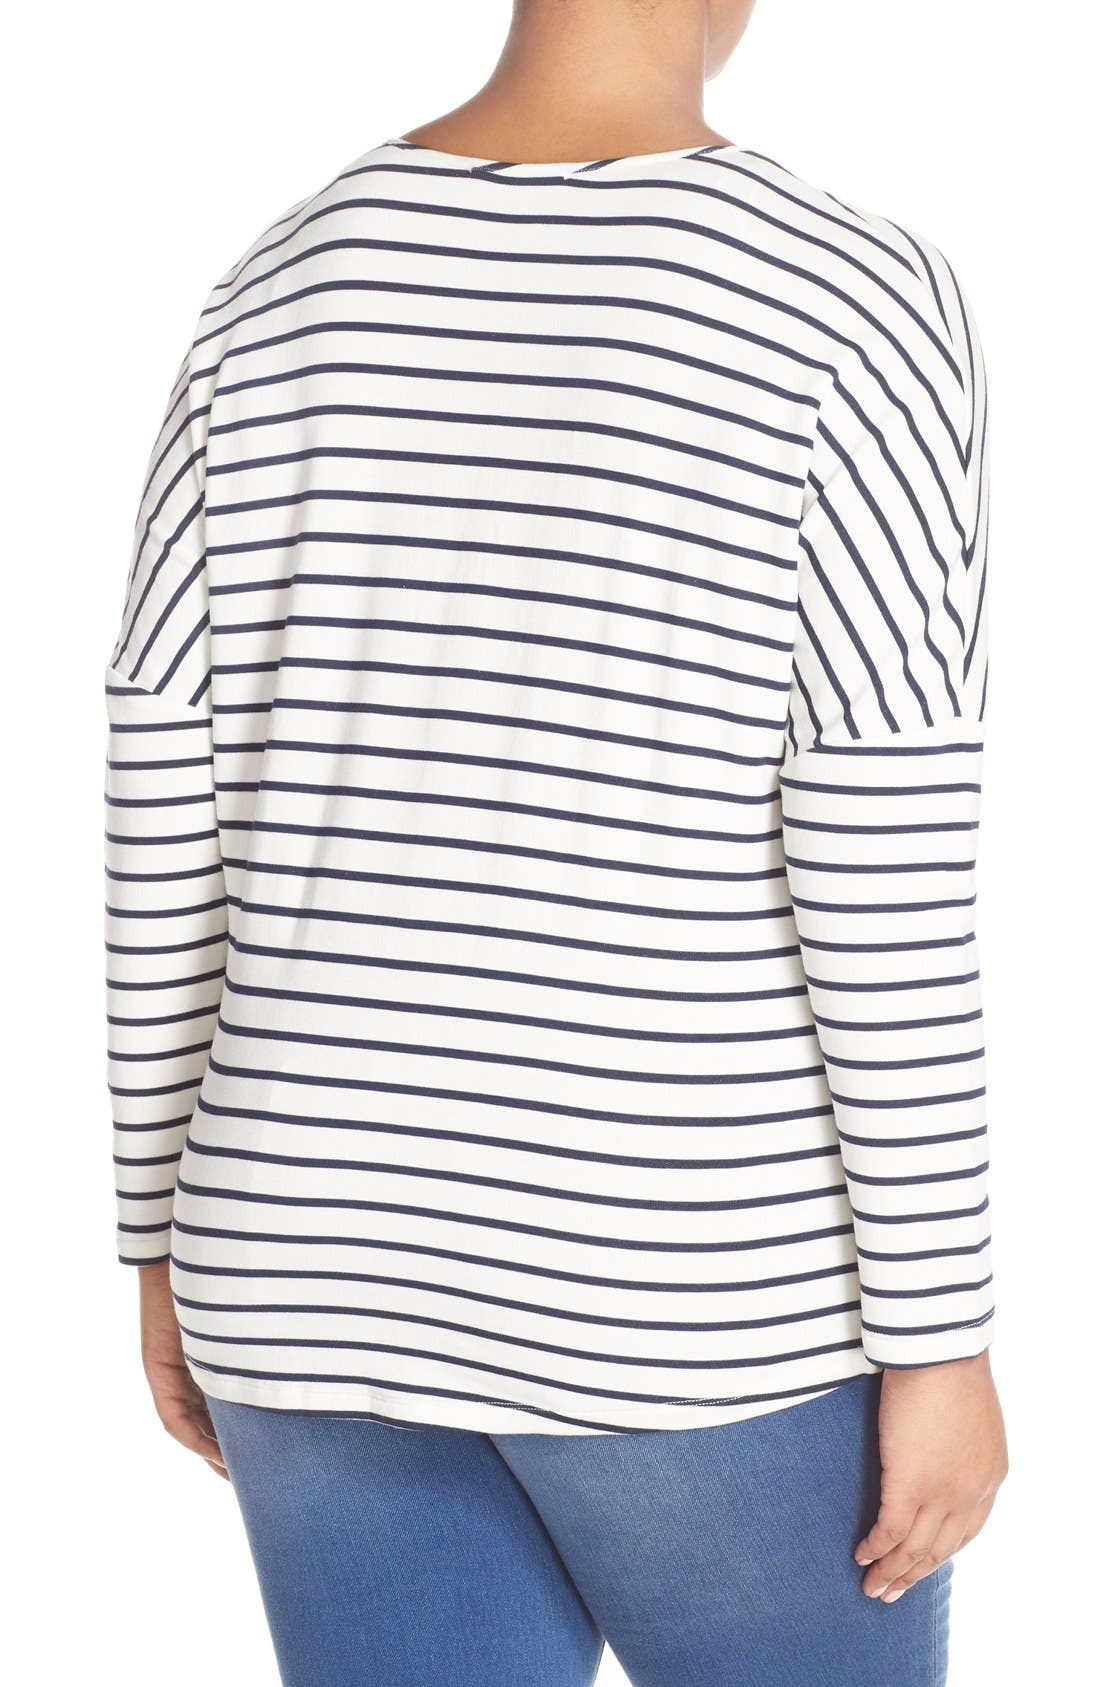 'Julian' Stripe French Terry Surplice Top,                             Alternate thumbnail 2, color,                             White/ Navy